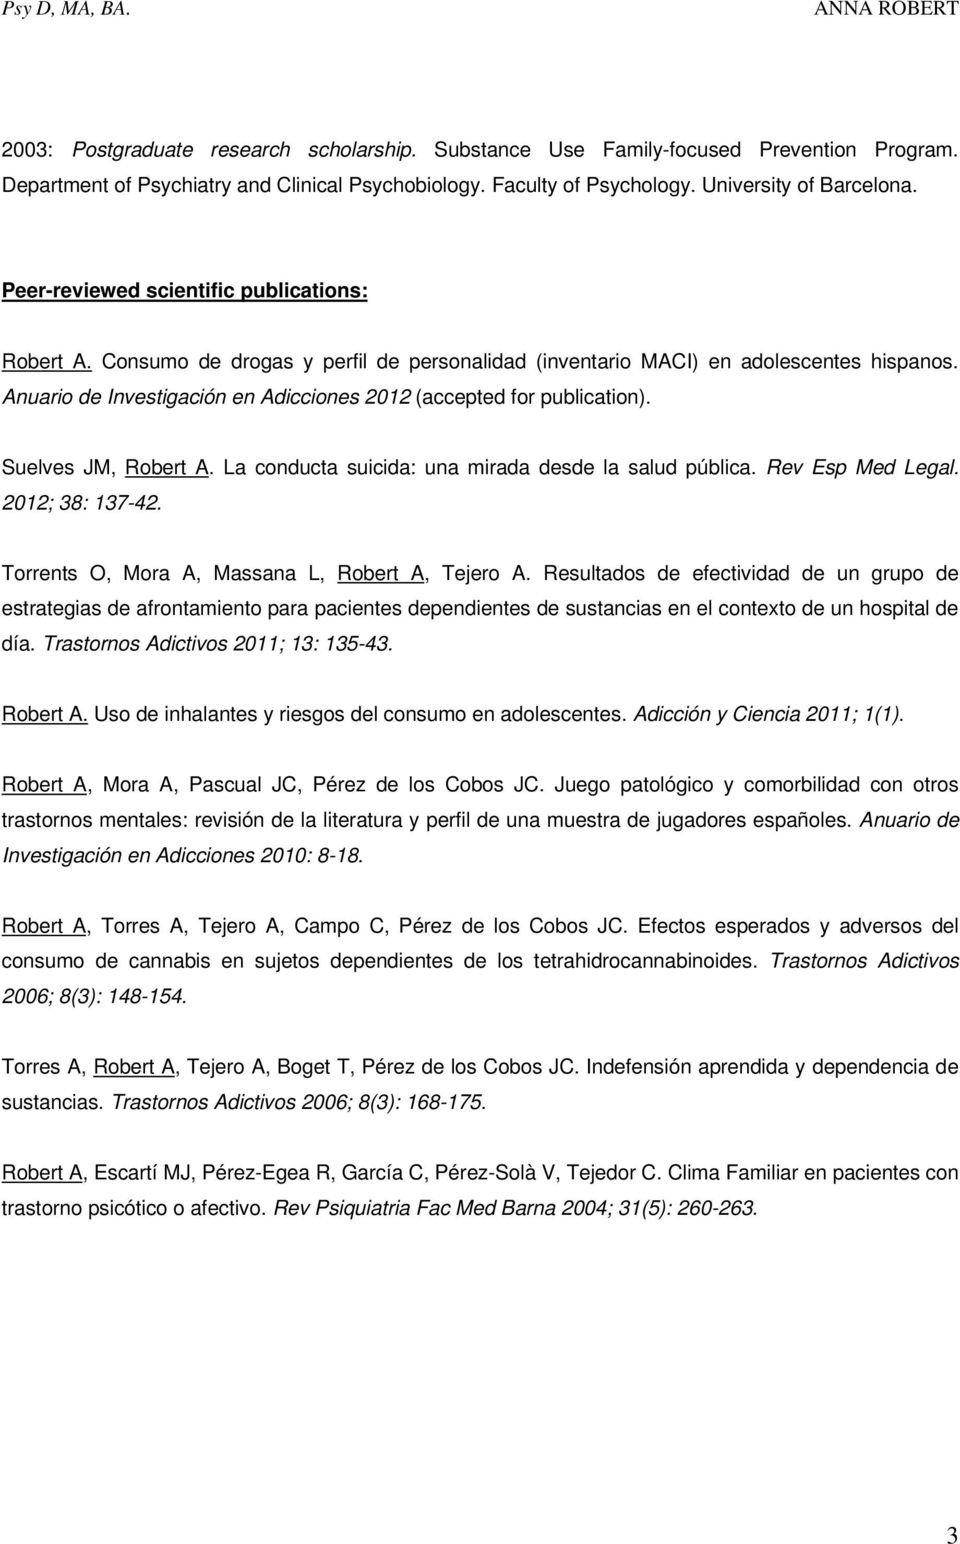 Anuario de Investigación en Adicciones 2012 (accepted for publication). Suelves JM, Robert A. La conducta suicida: una mirada desde la salud pública. Rev Esp Med Legal. 2012; 38: 137-42.